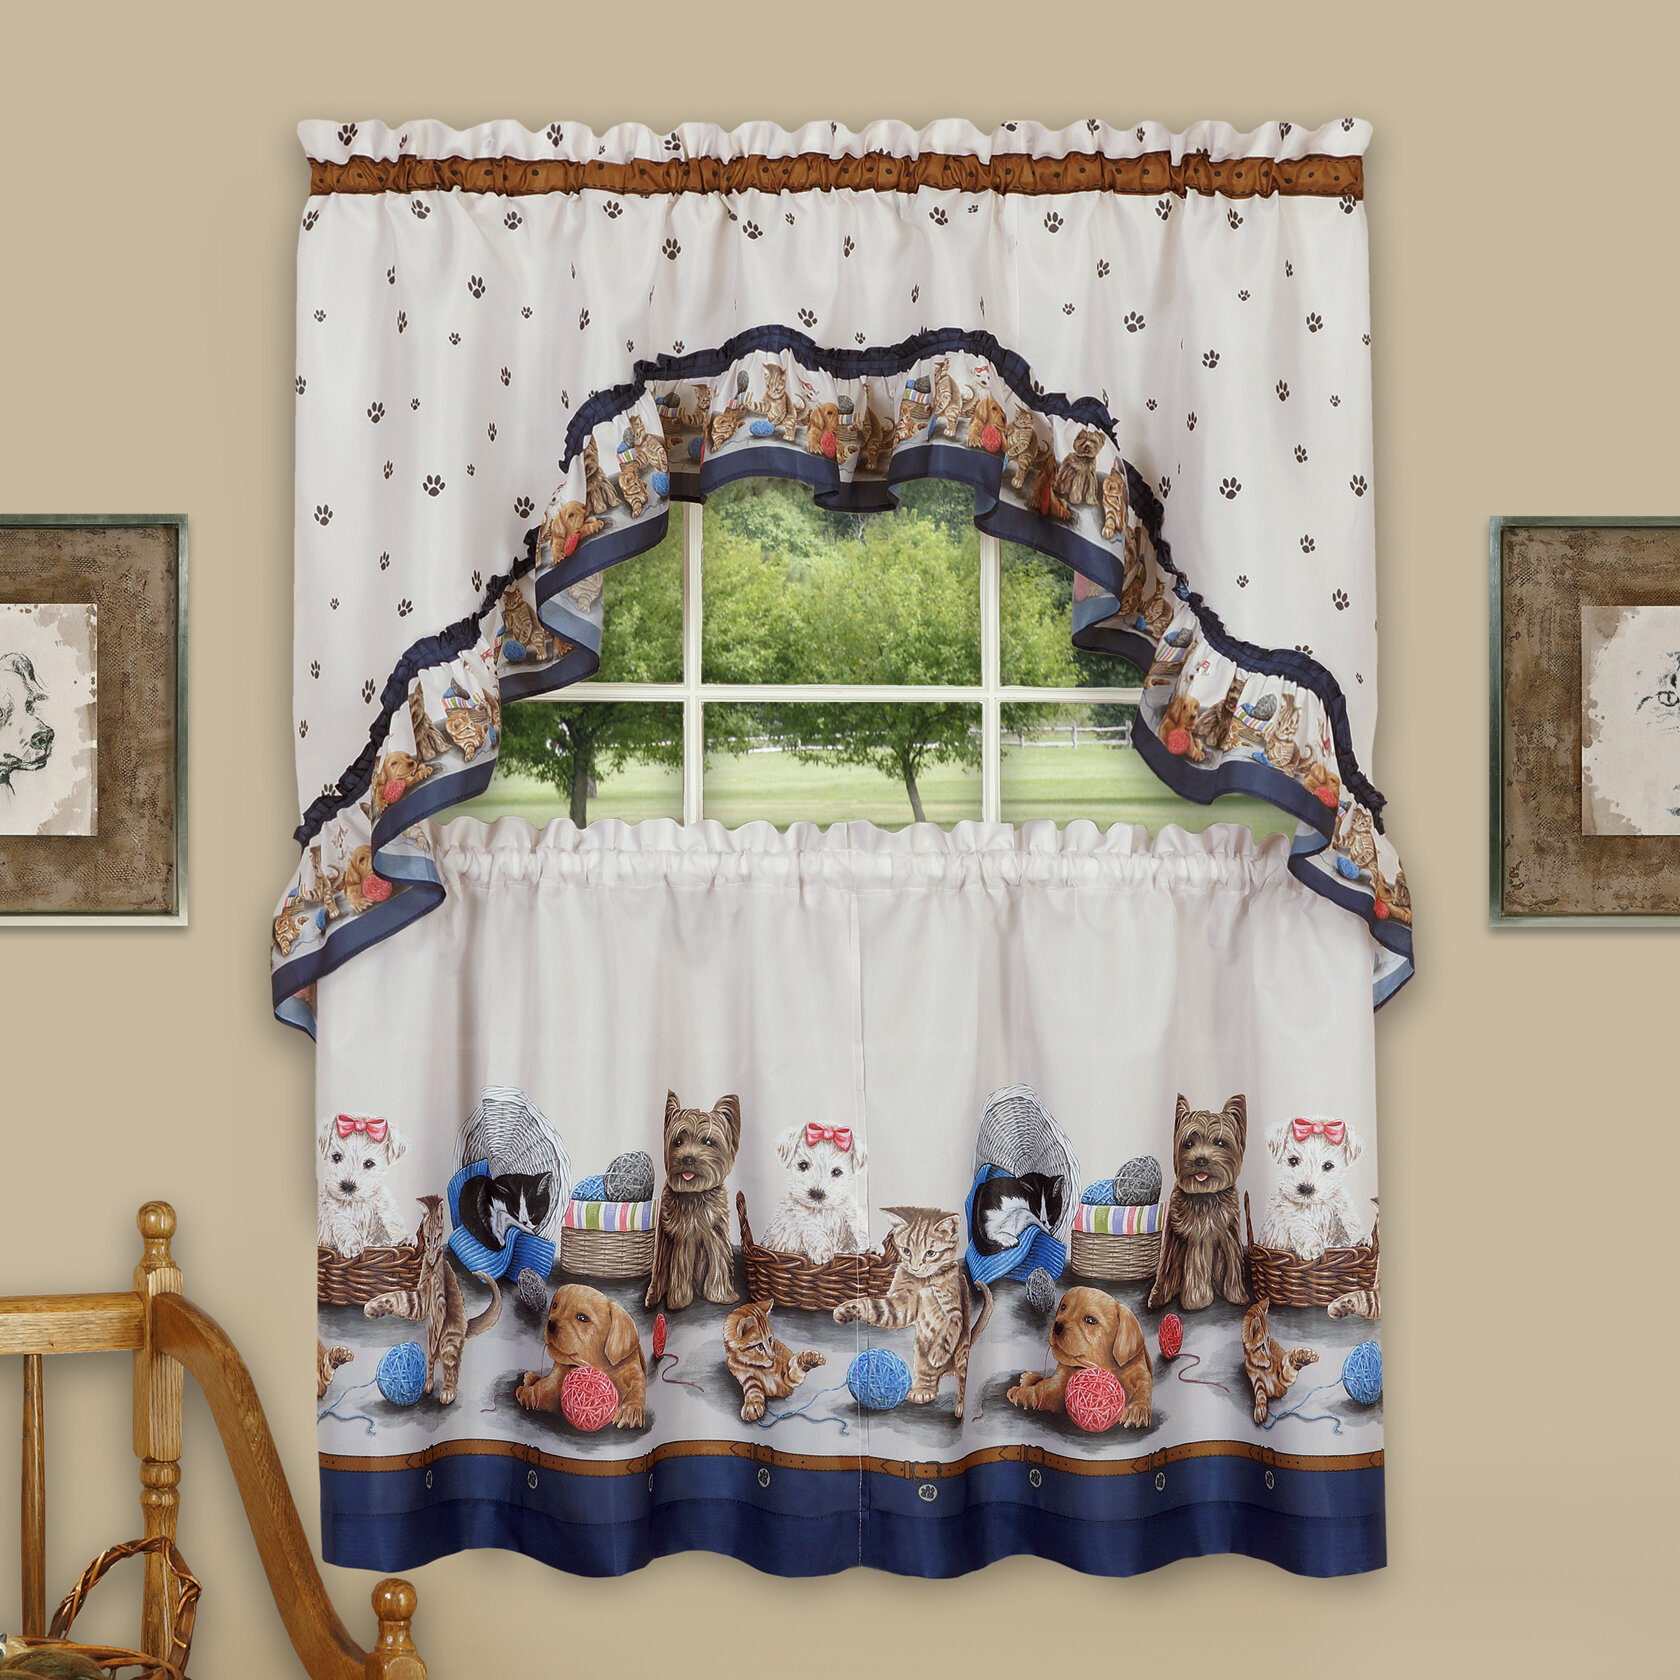 Wieczorek Precious Tier And Swag 3 Piece Kitchen Curtain Set For Chocolate 5 Piece Curtain Tier And Swag Sets (View 20 of 20)